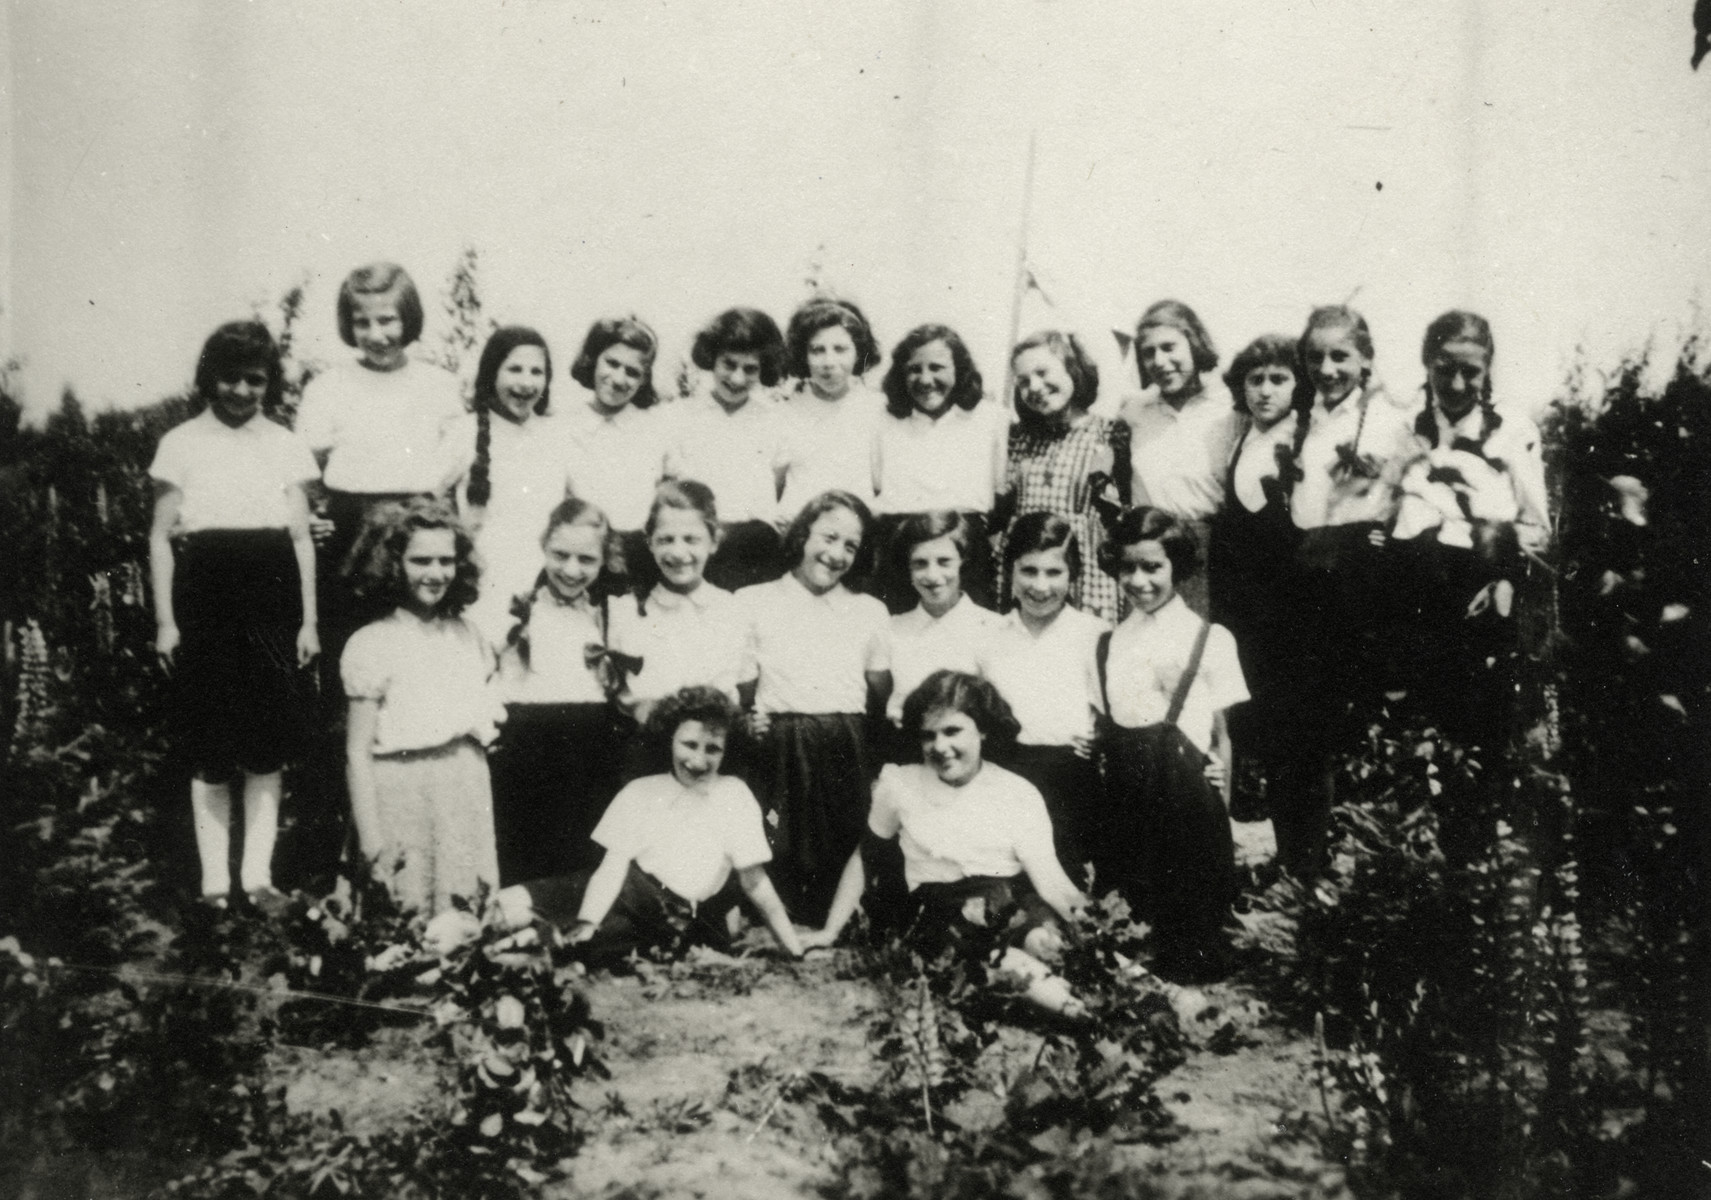 Group portrait of school girls in Westerbork.  Among those pictured are Sonni Birnbaum (second row, second from the left), Yehudit Stern (second row, third from the right), Yehudit Nusbaum (second row, far right),   Regina Stein (top row, sixth from the right and Trudie Stein (top row, second from the right).